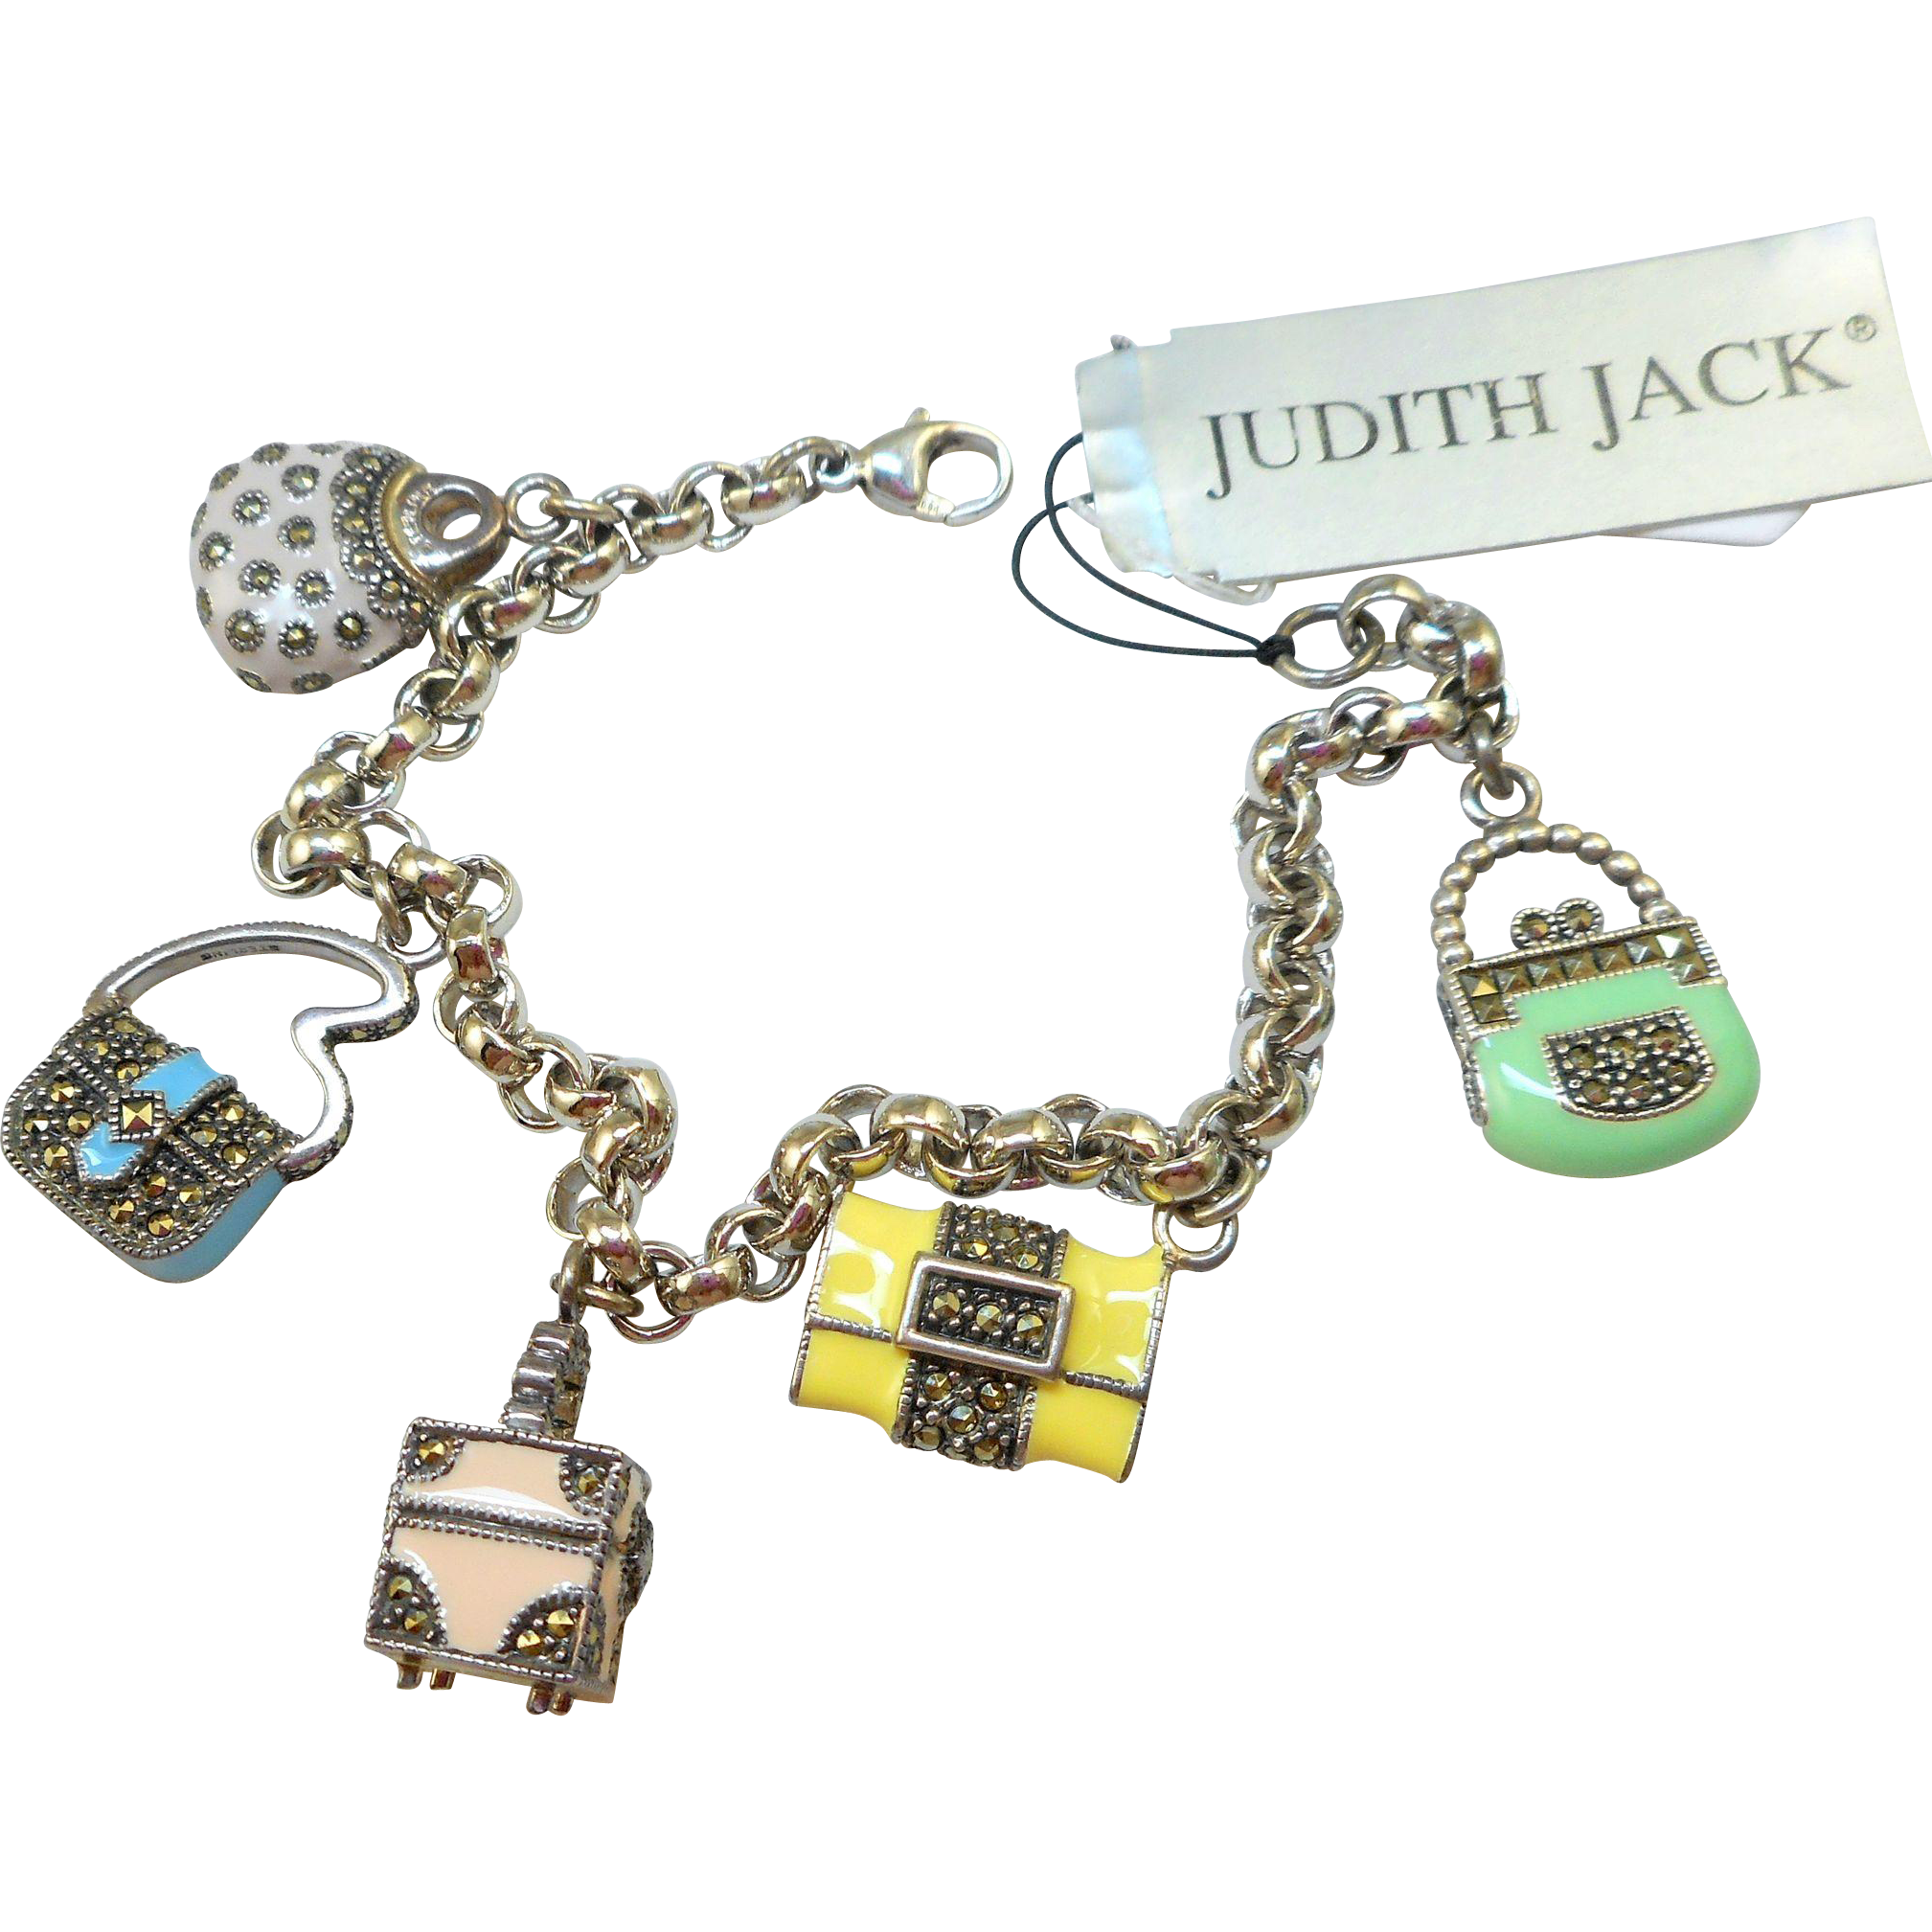 Judith Jack Charm Bracelet with Purses - NOS